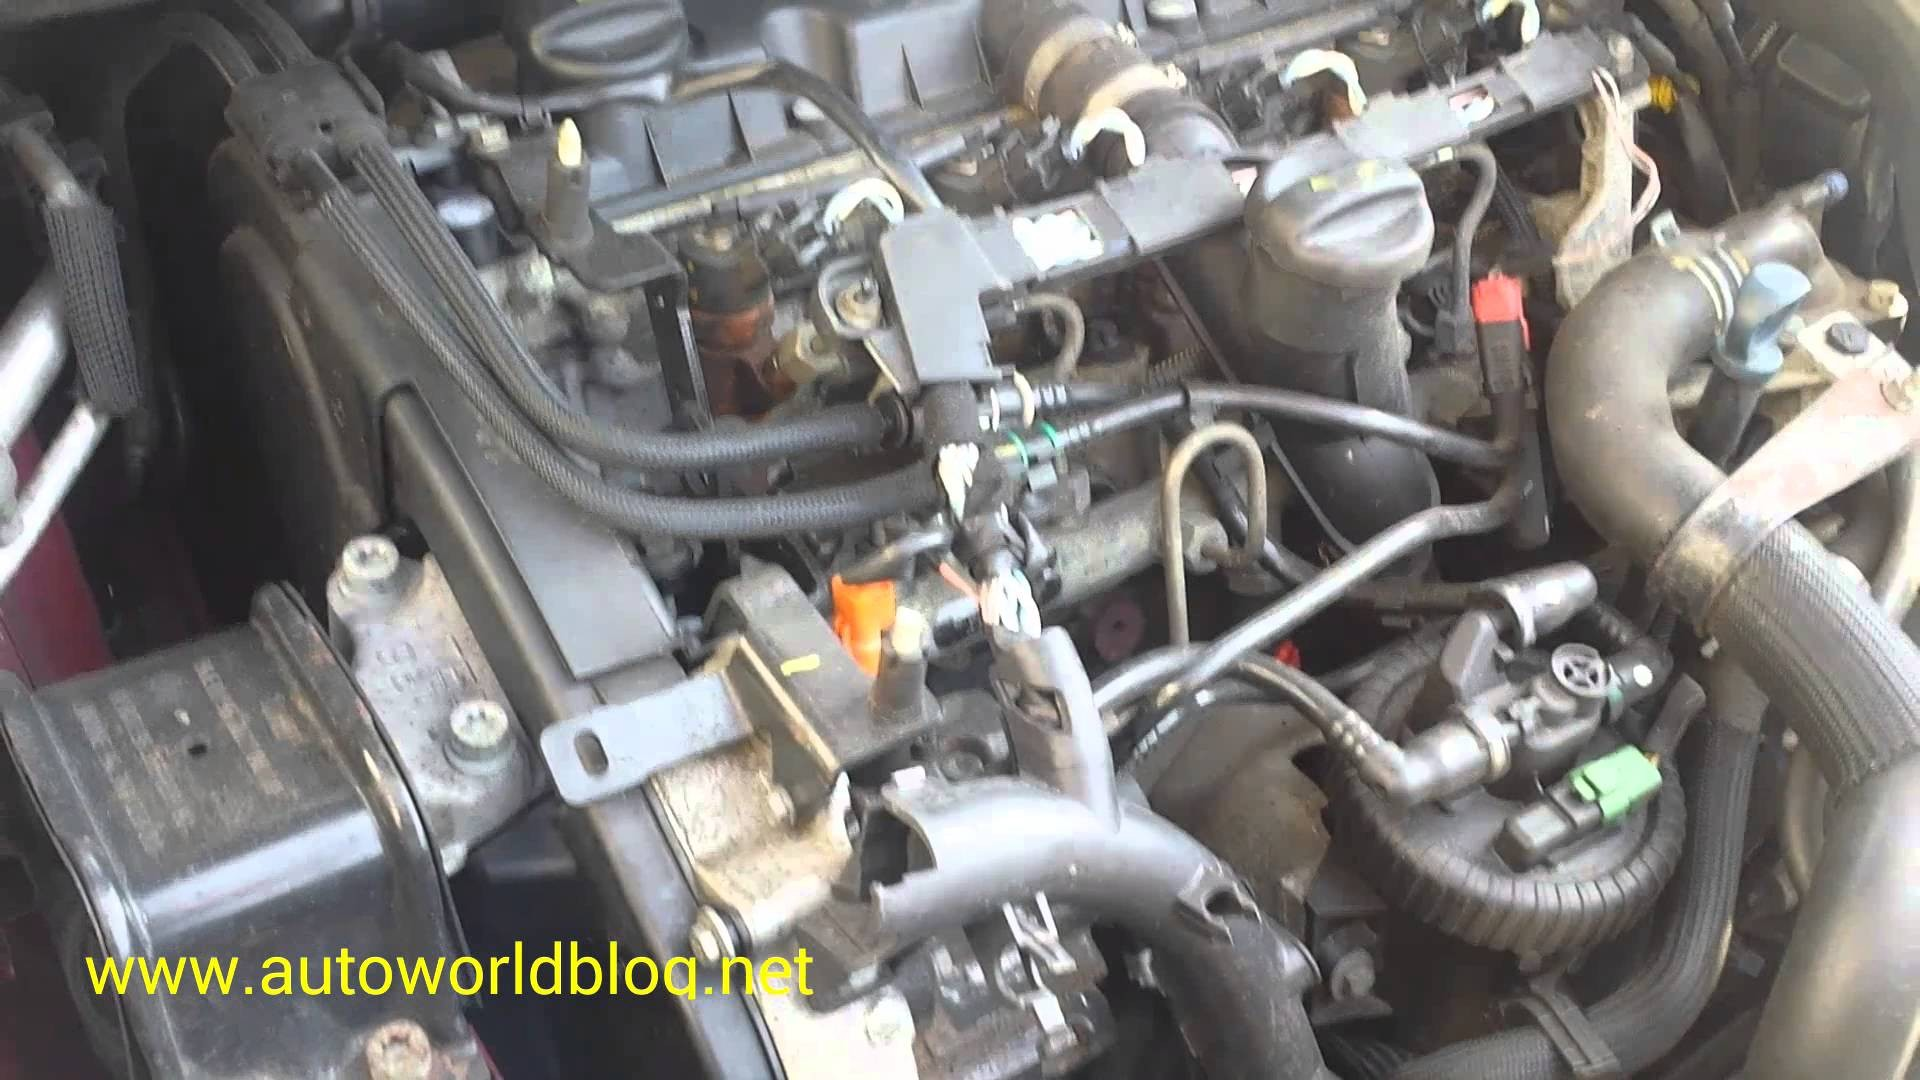 hight resolution of citroen c4 engine diagram peugeot 307 glx hdi 110hp 2003 diesel manual engine sound problem of